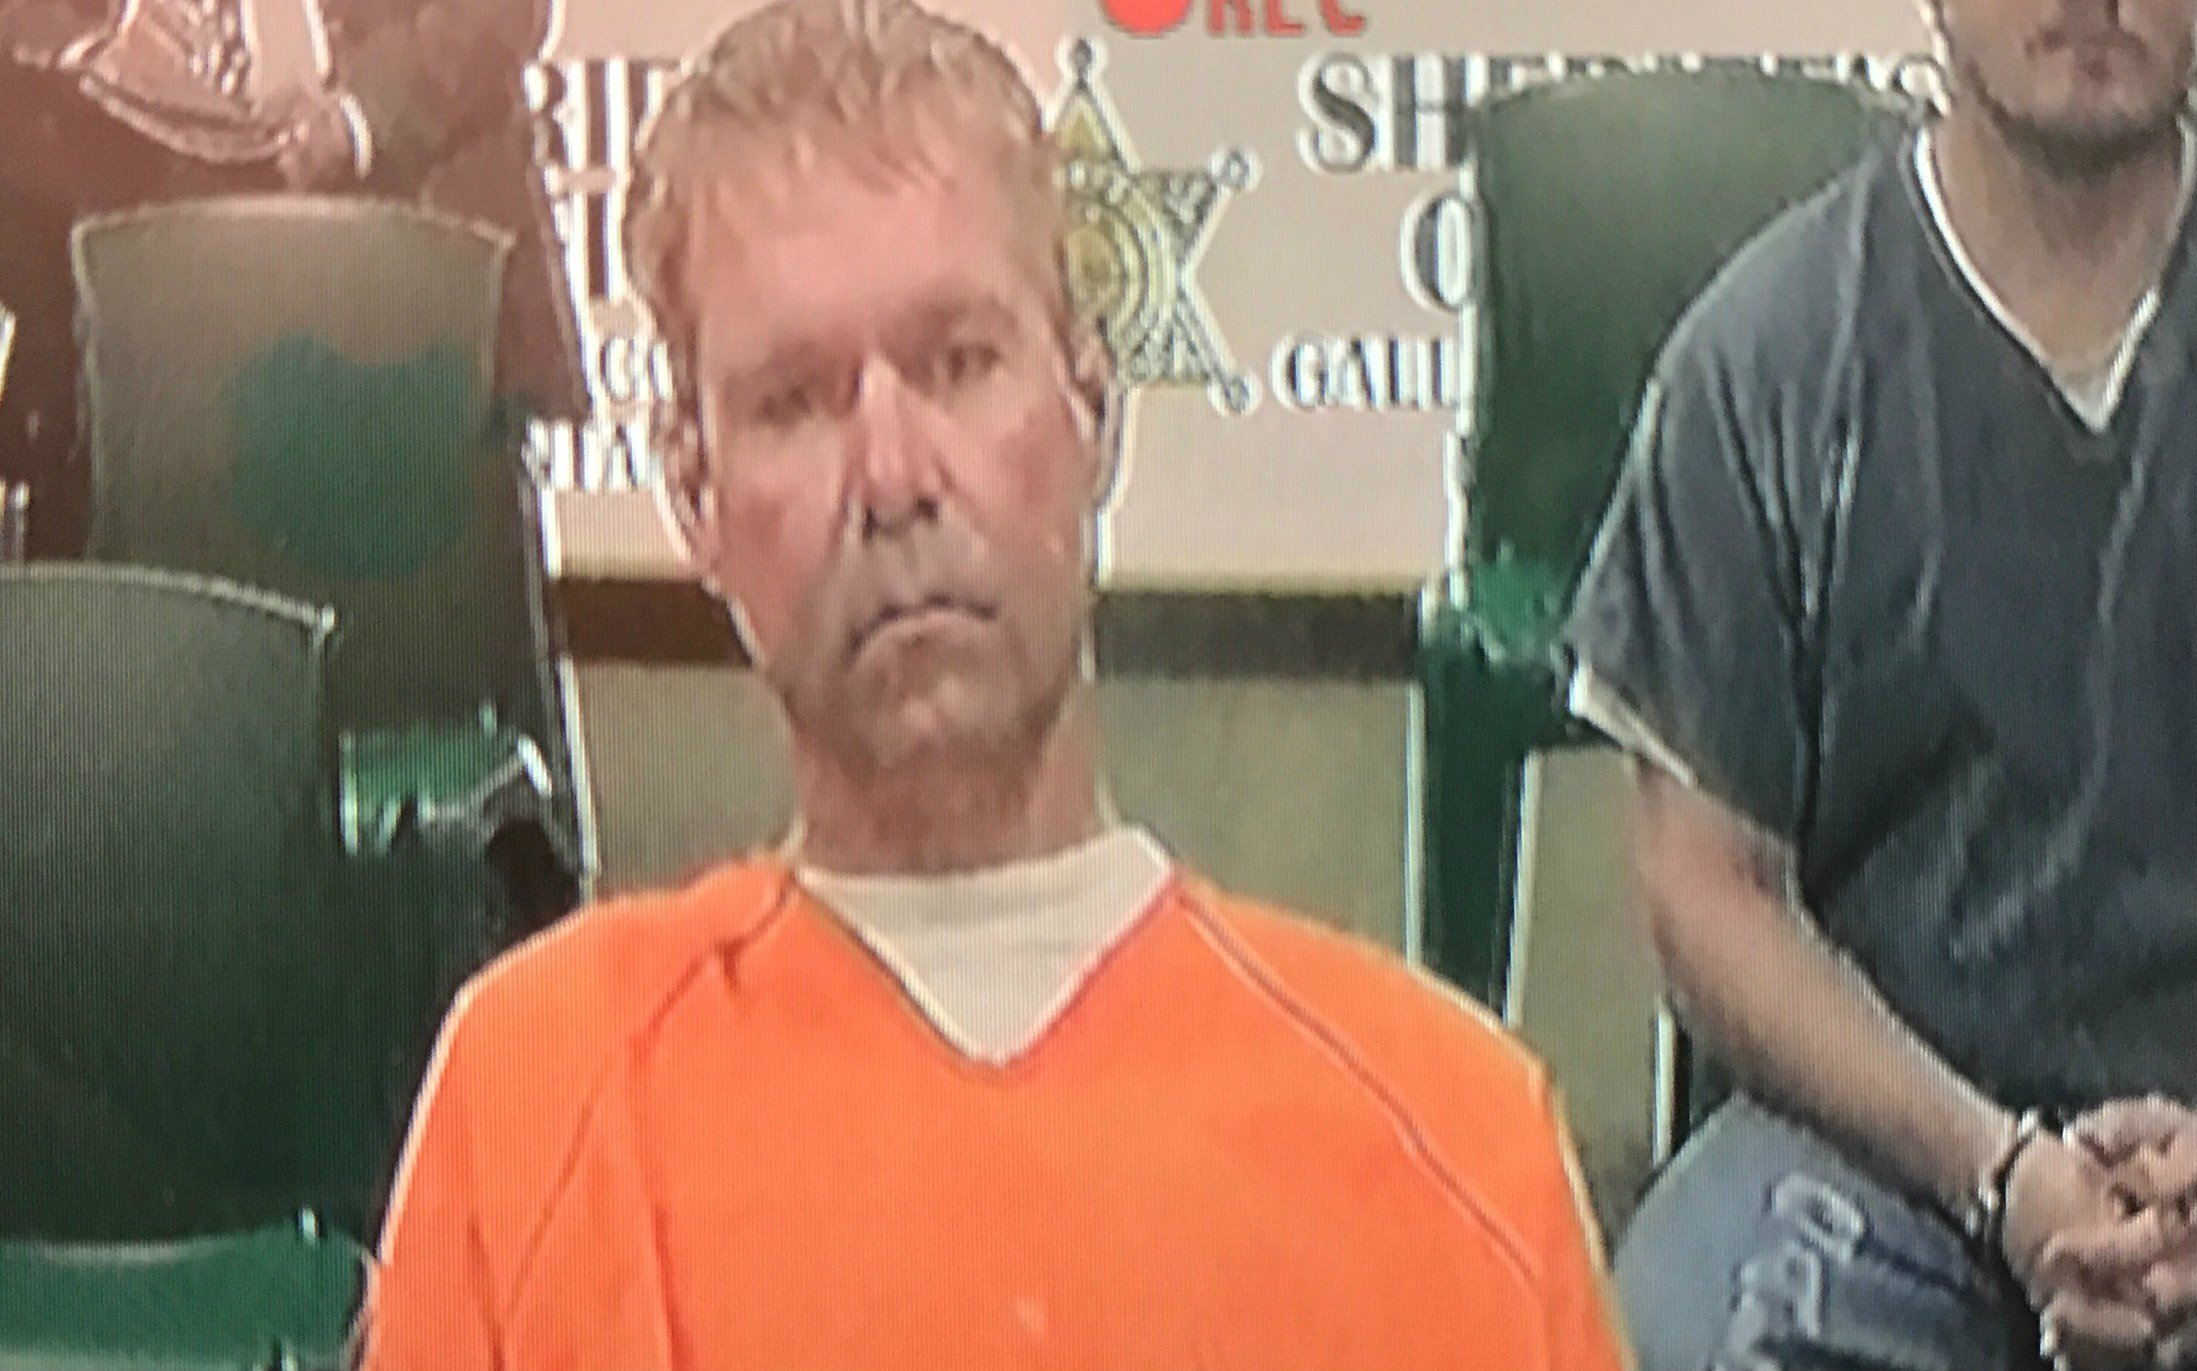 Blake Oren Robinson, a transient, 33, was charged with arson, a felony and faces $30,000 bail. (MTN News photo)